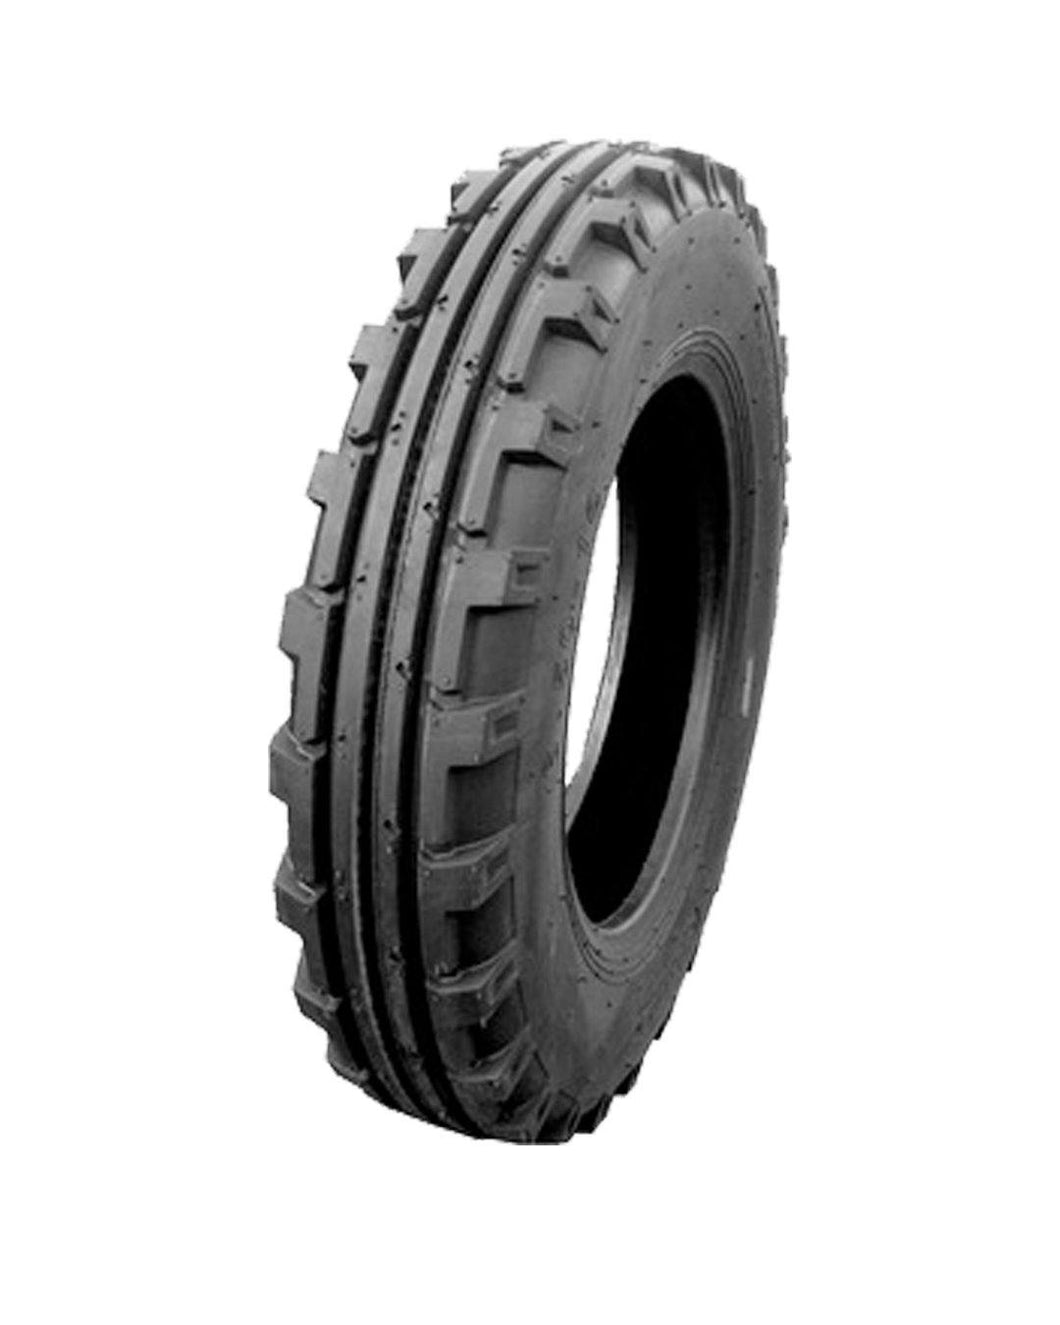 Labadi Tyres 6.00-16 Front Tractor Farm/Agricultural Tyres